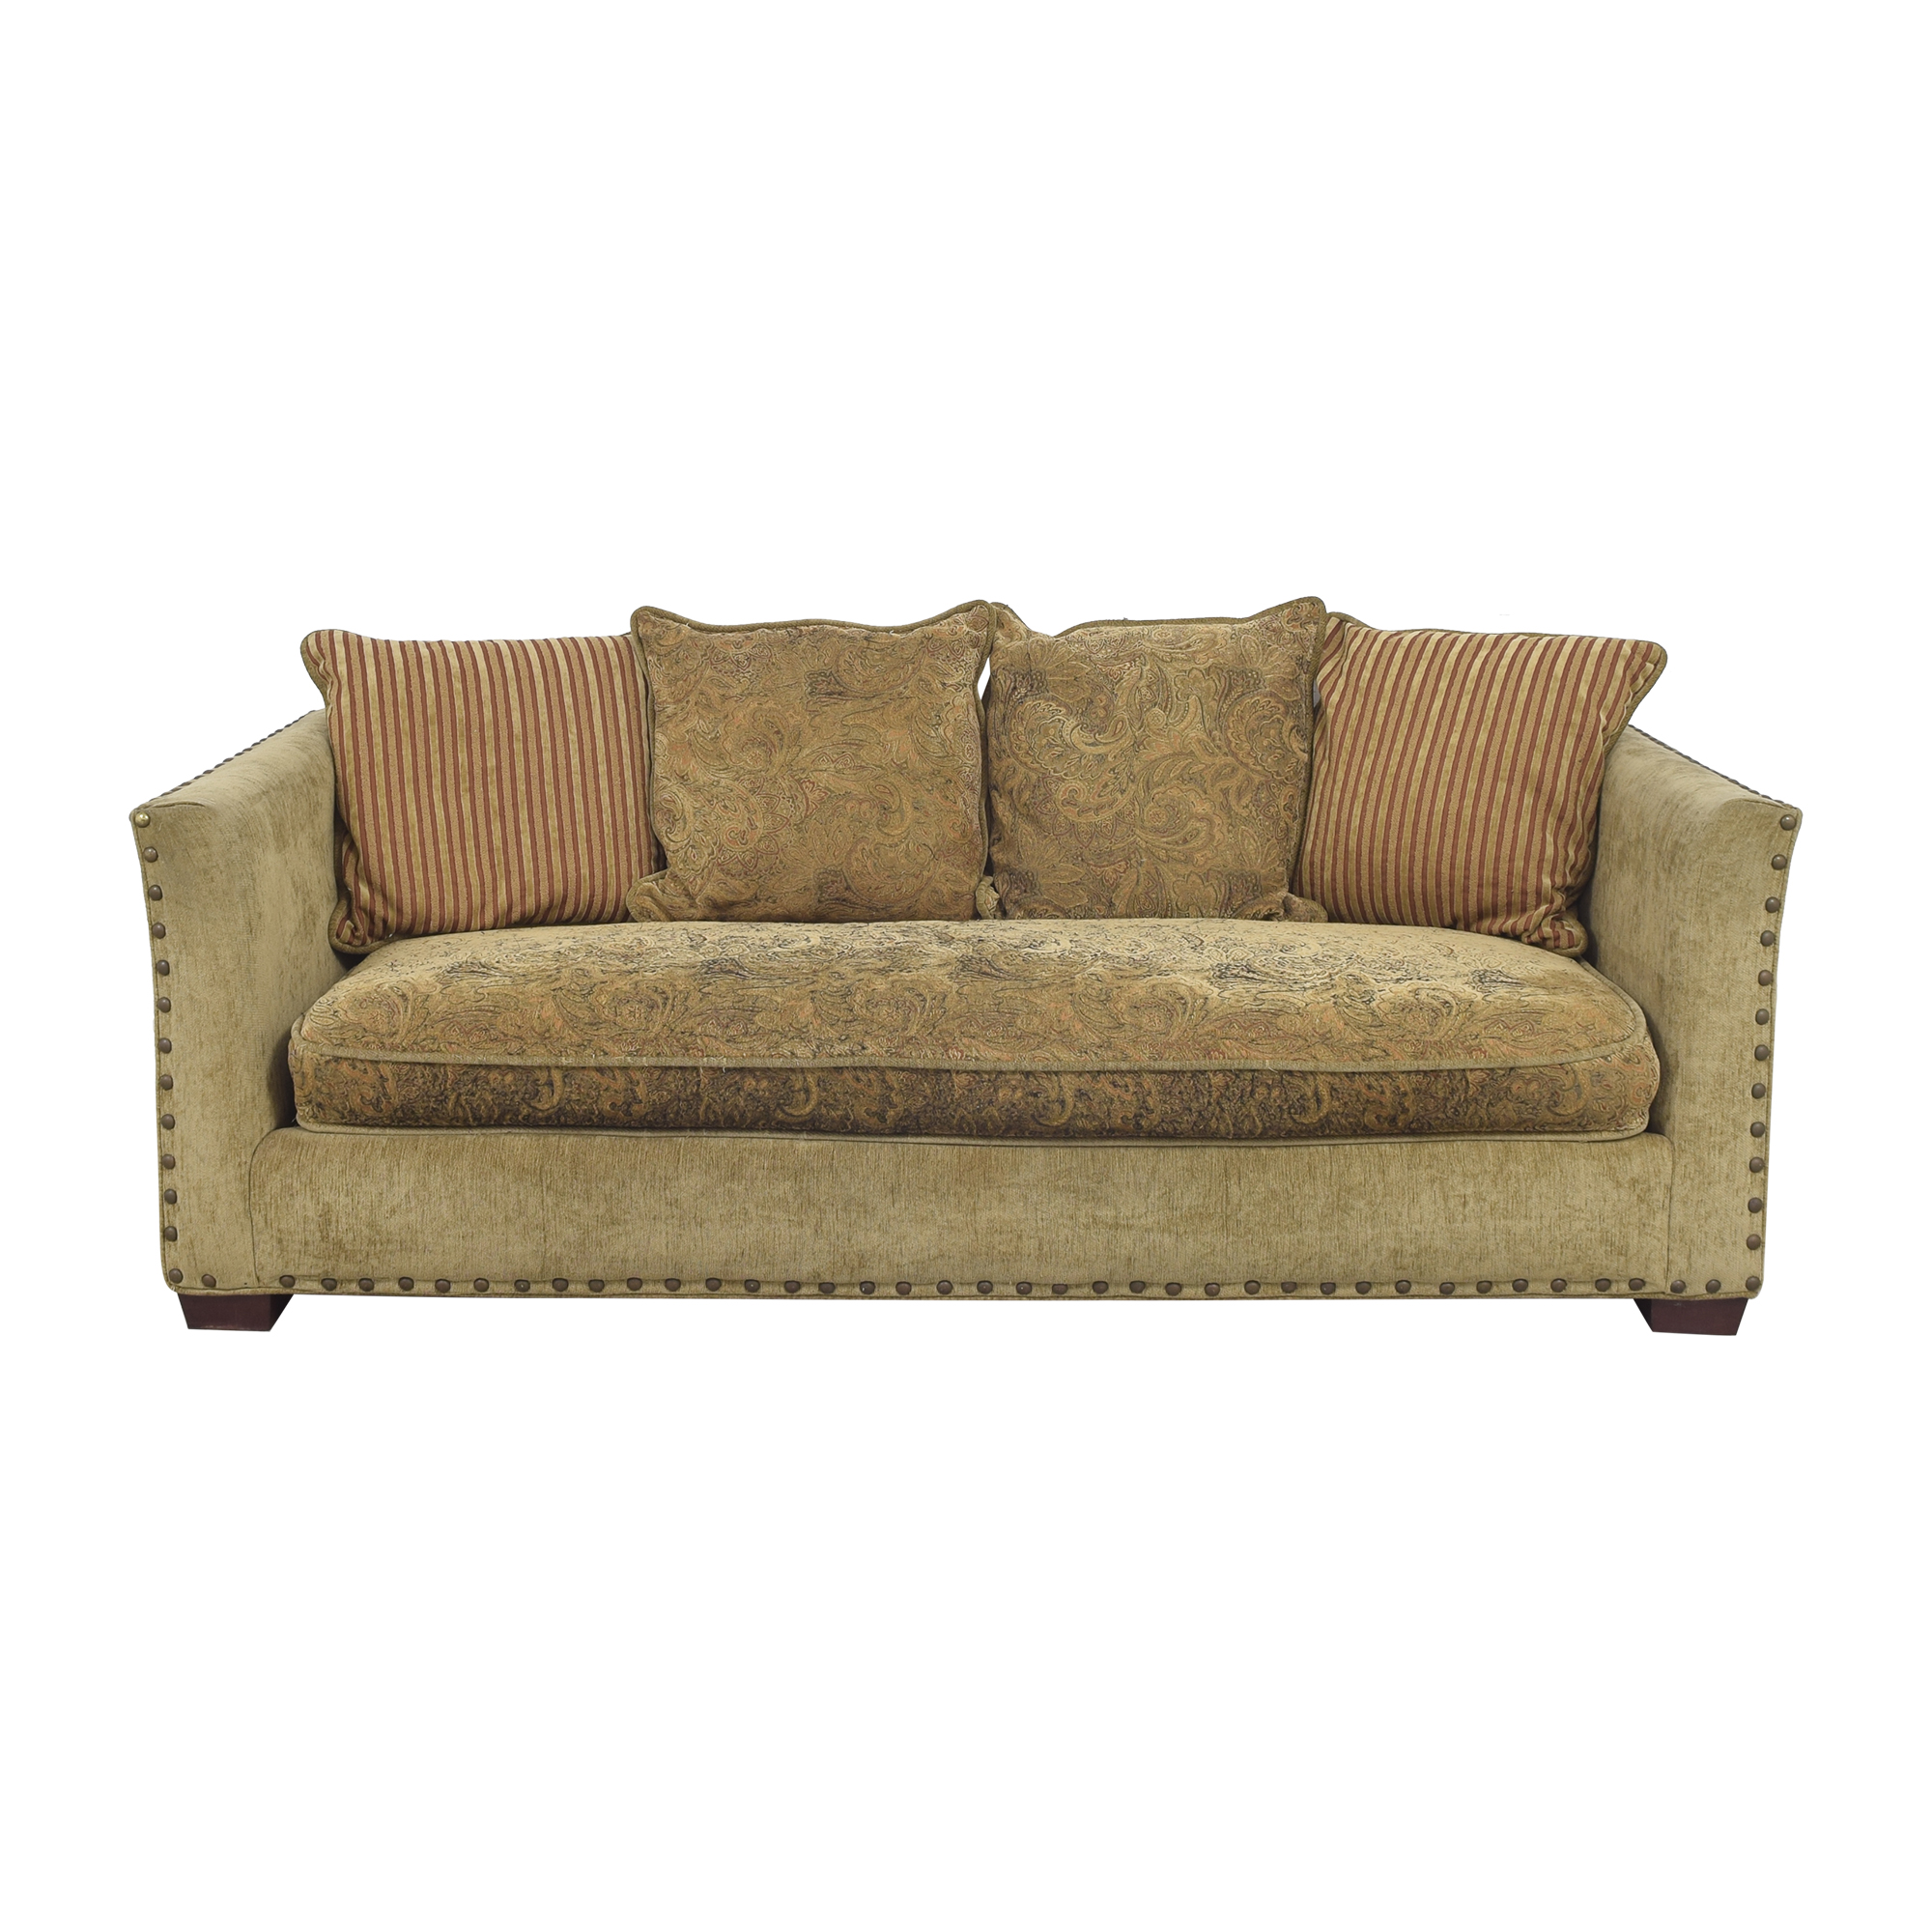 Robin Bruce Robin Bruce Bench Cushion Sofa coupon